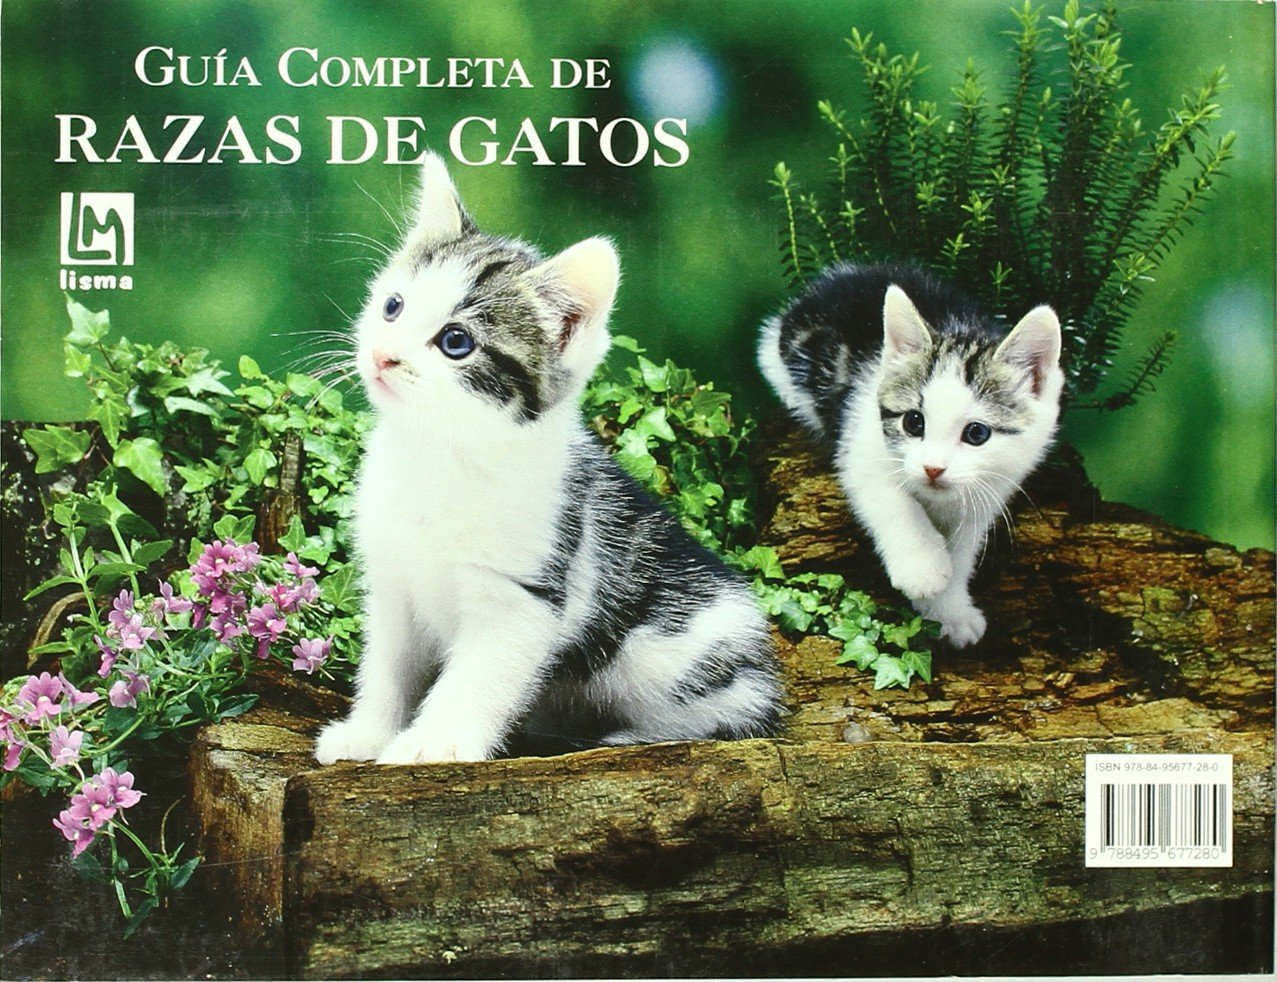 Guia Completa De Razas De Gatos/ Complete Guide of Cat Breeds (Spanish Edition): Louisa Somerville: 9788495677280: Amazon.com: Books